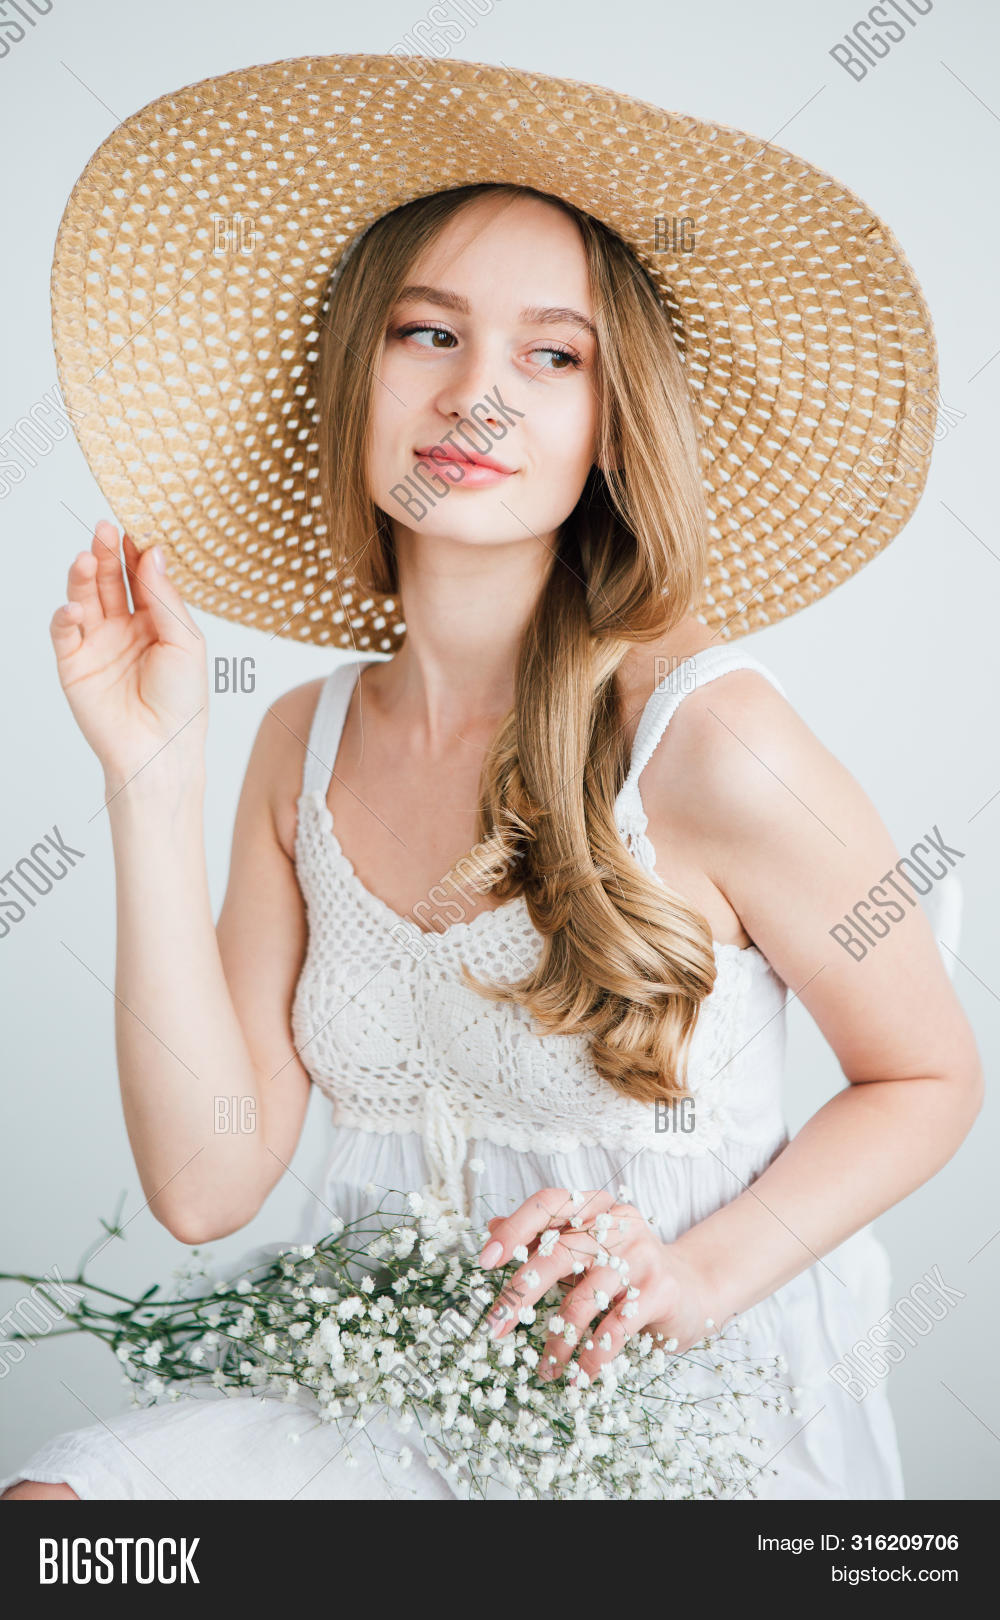 Girl With Long Hair And Hat Posing With A Bouquet Of White Flowers